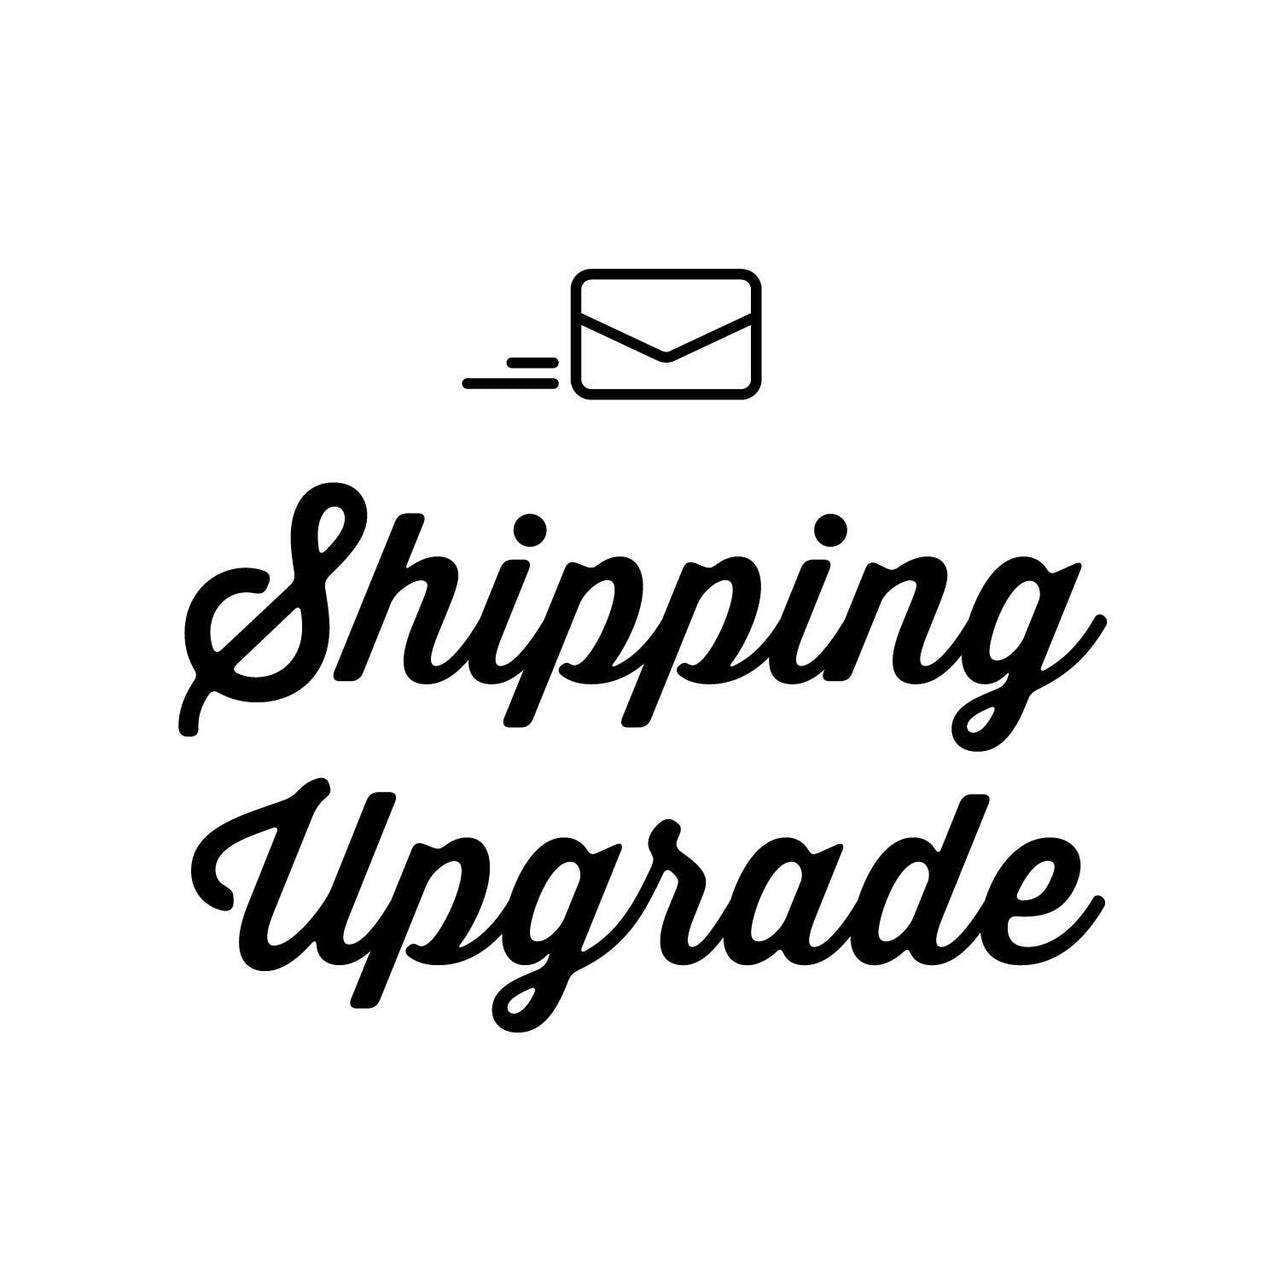 Shipping upgrade - Radical Buttons